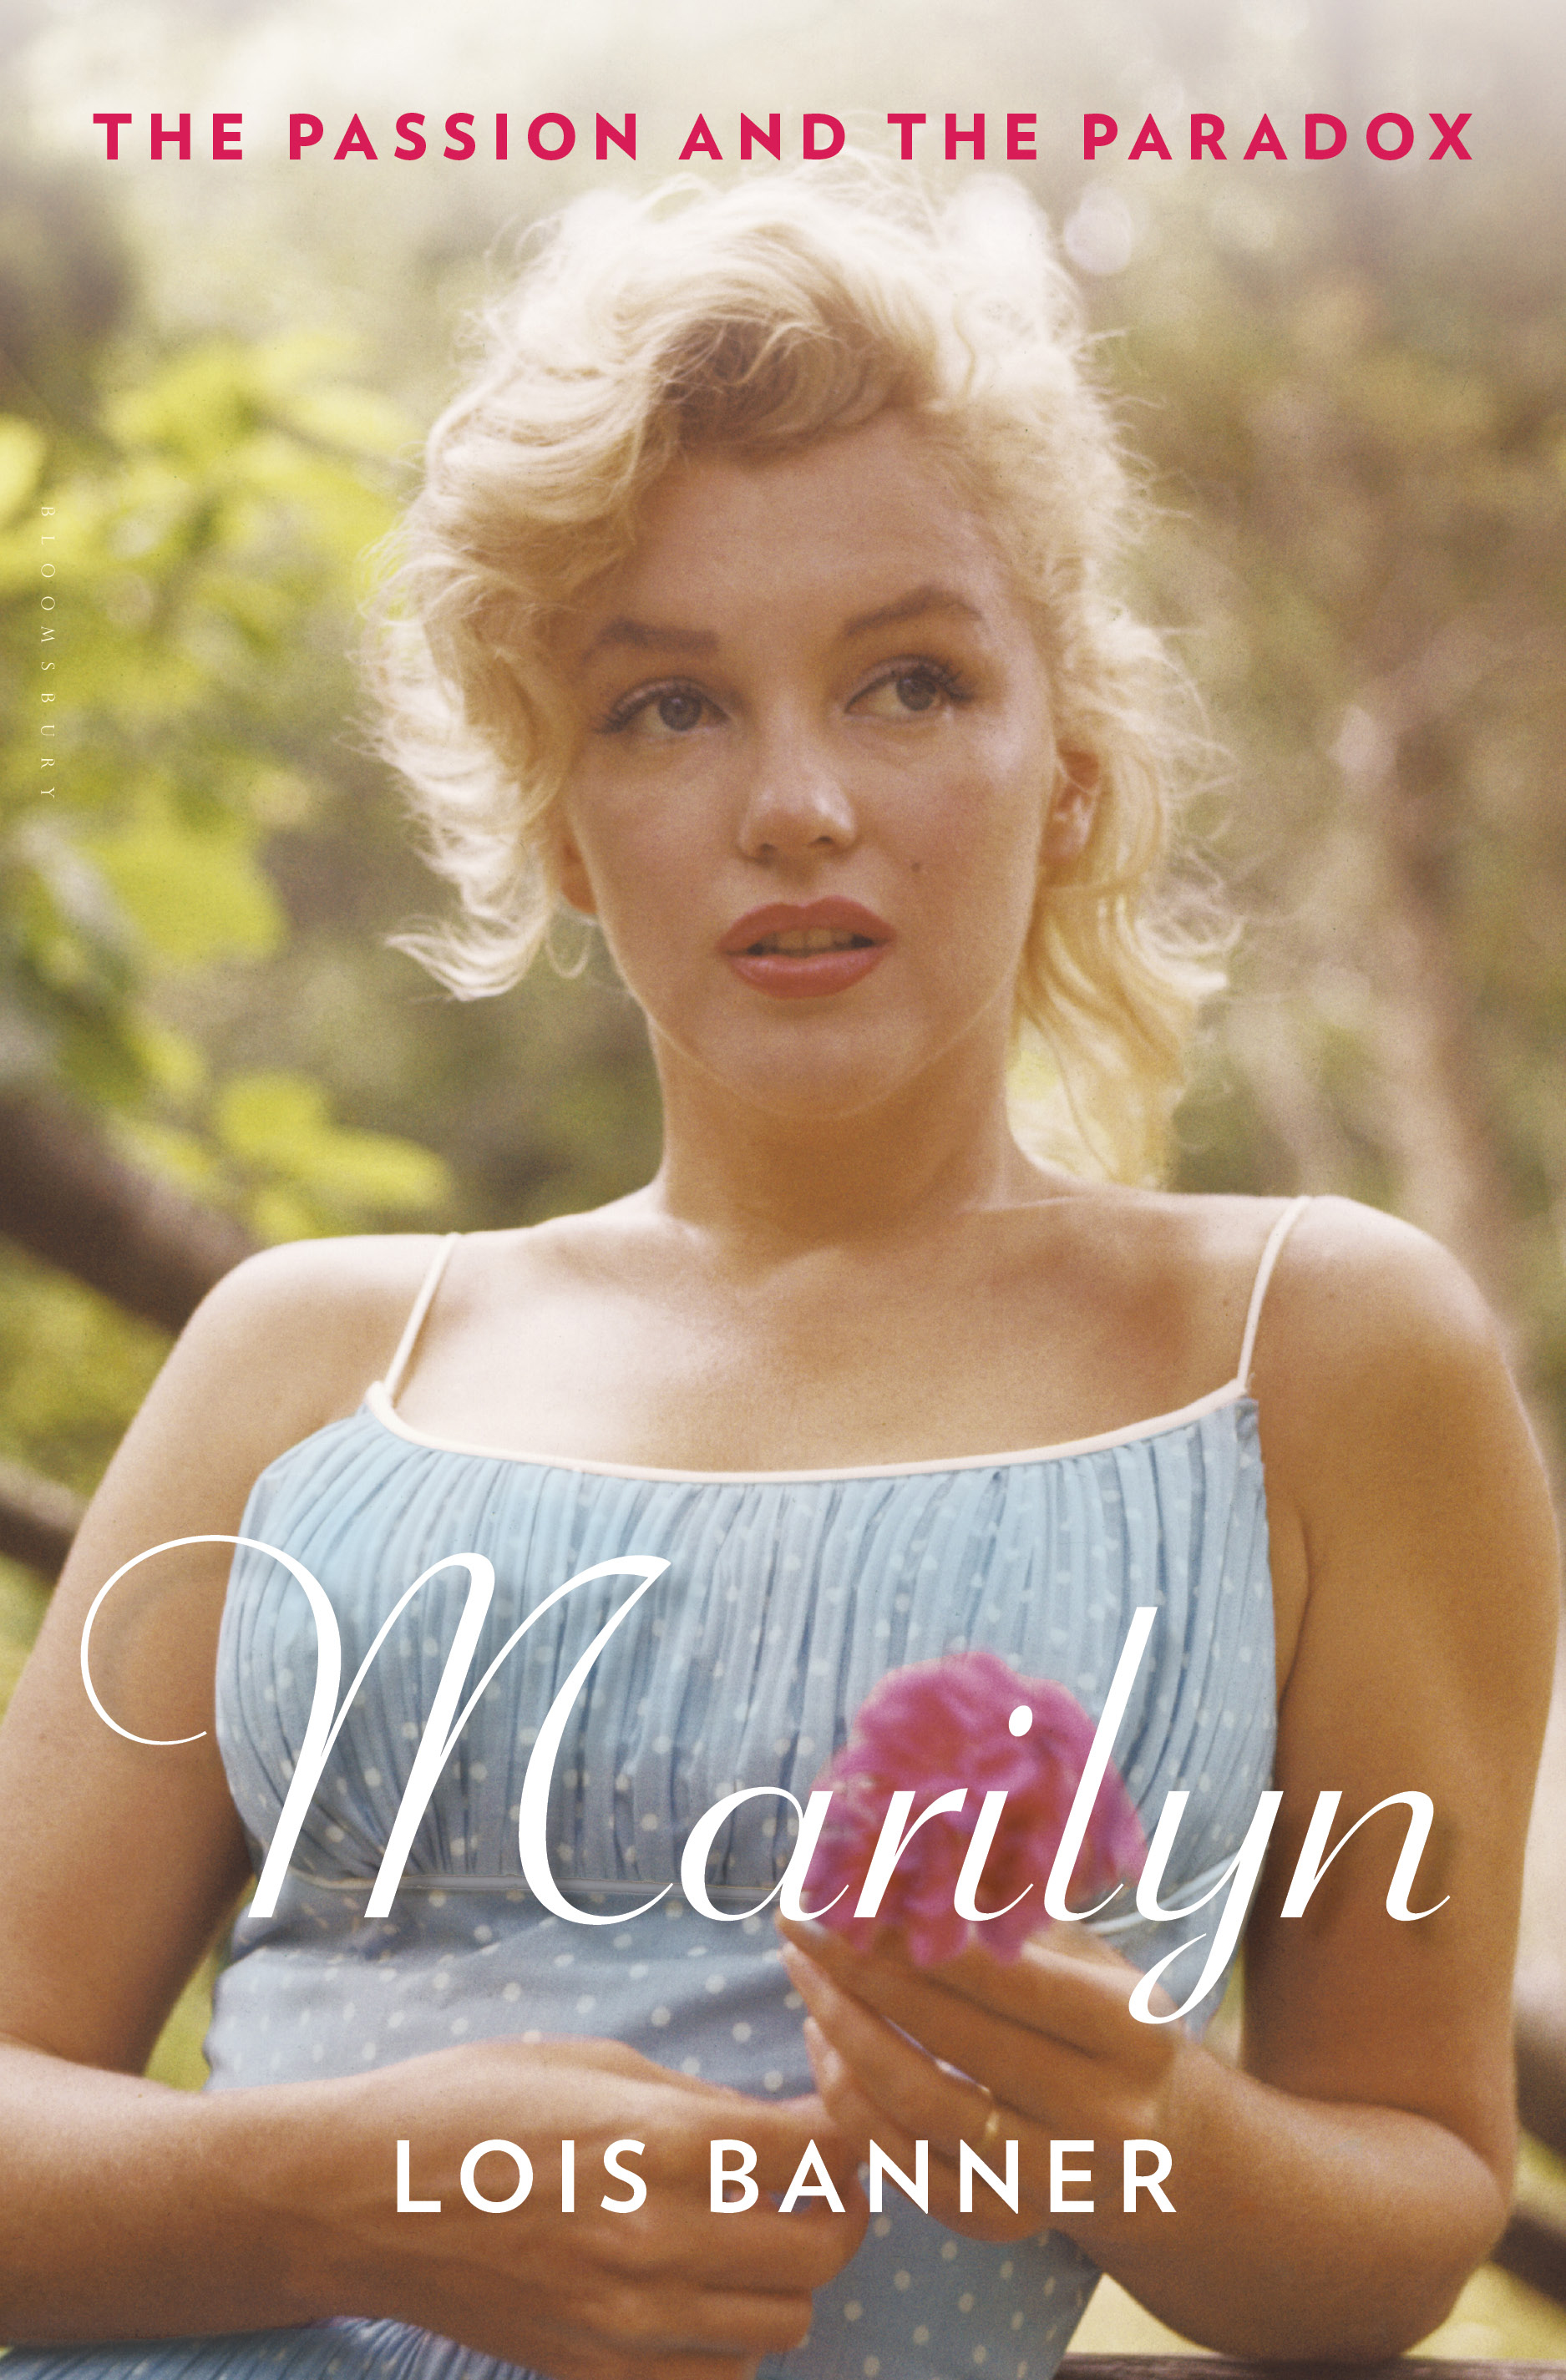 Professor Lois Banner reveals Marilyn Monroe as a complex and intellectual autodidact in her newest book, Marilyn: The Passion and the Paradox.